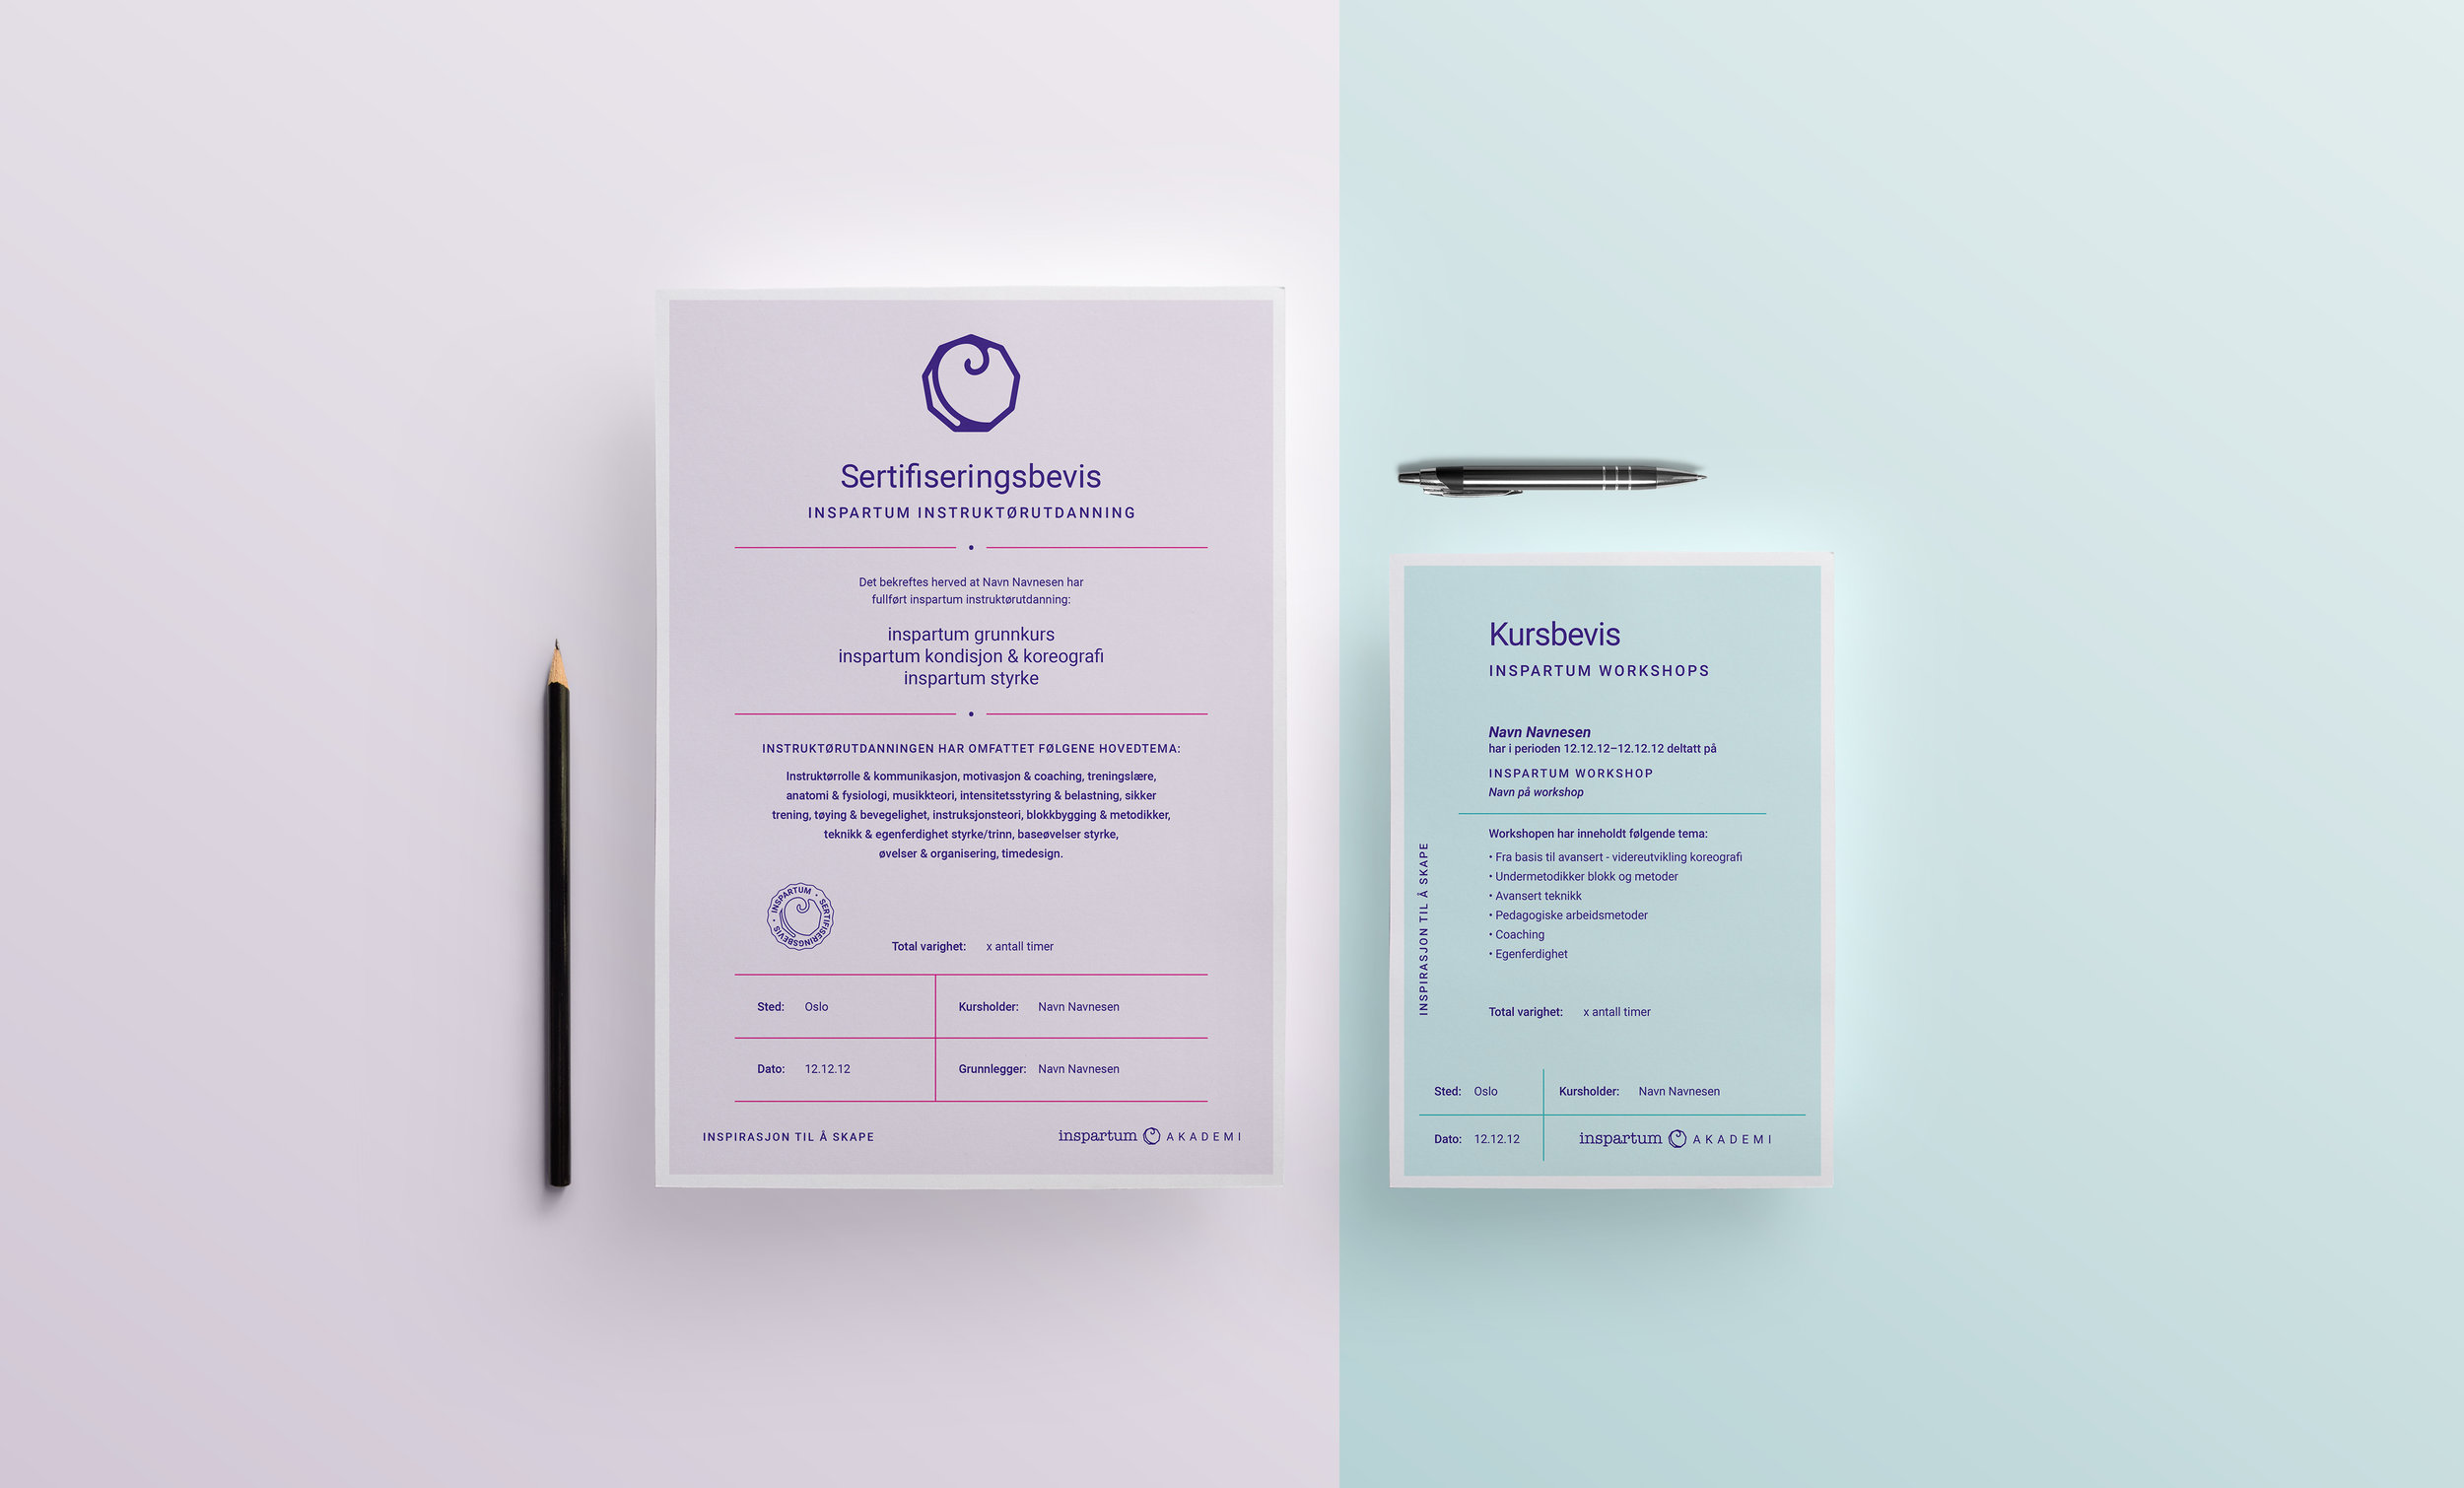 Left: A4 diploma for instructors. Right: A5 diploma for workshop participants.